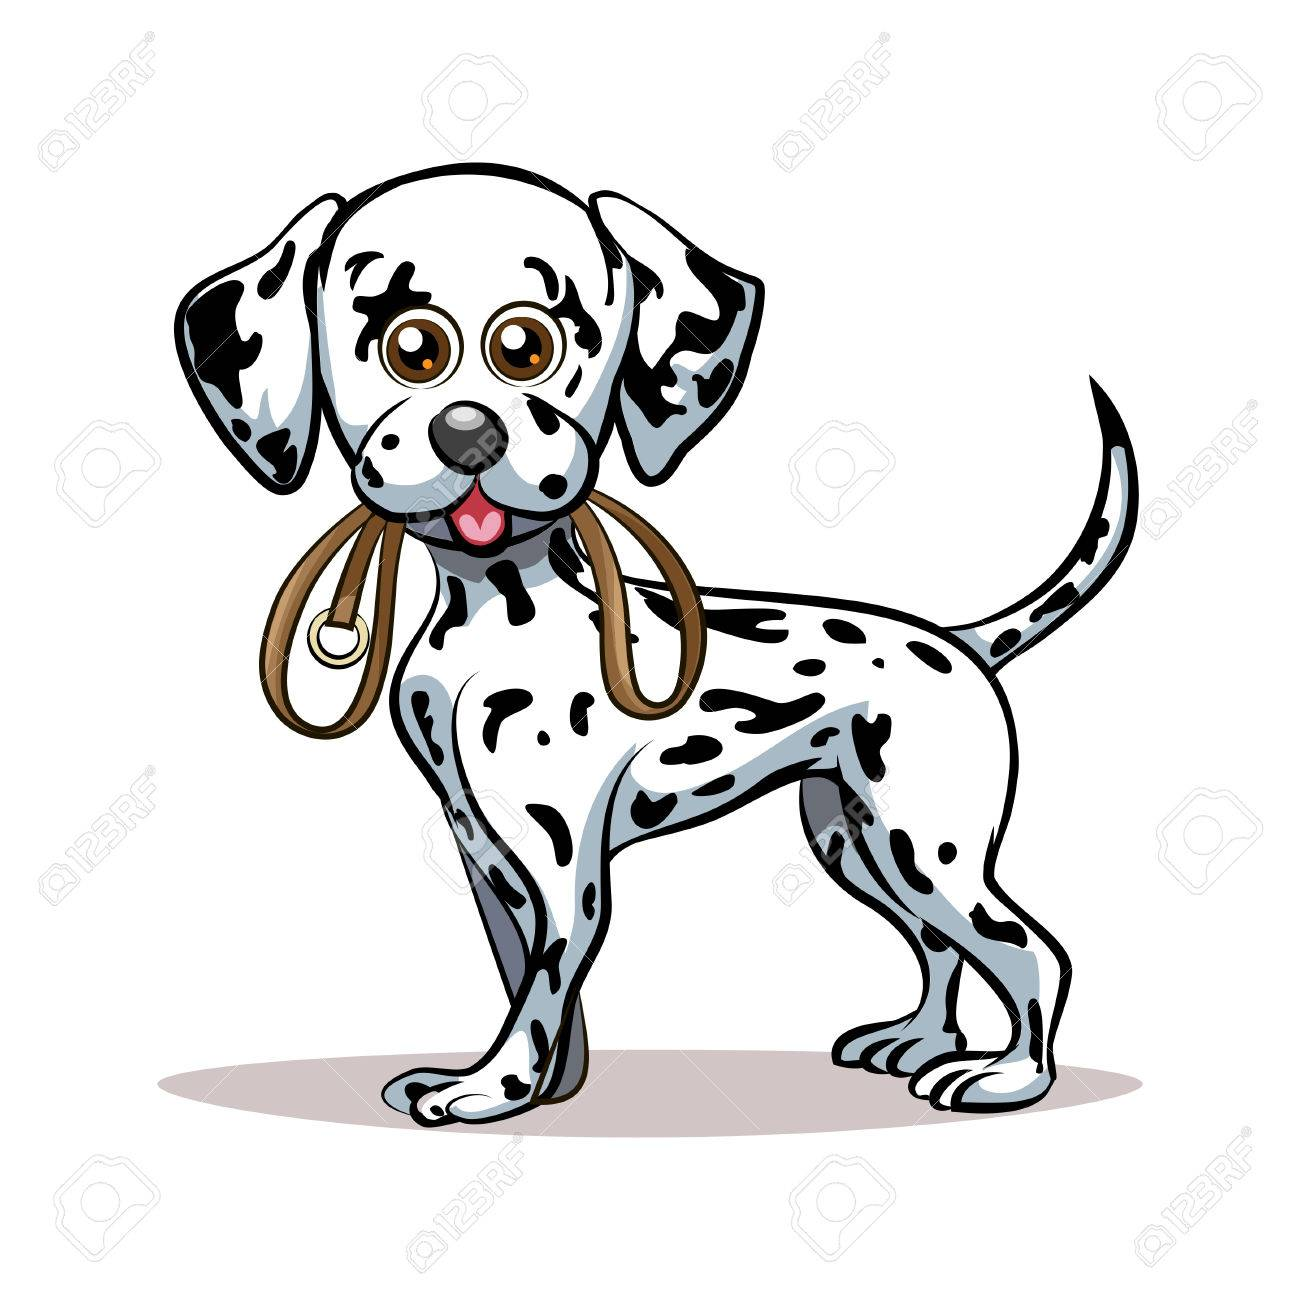 Dalmatian Puppy With Dog Lead In His Mouth Good For Pet Club Royalty Free Cliparts Vectors And Stock Illustration Image 38367843